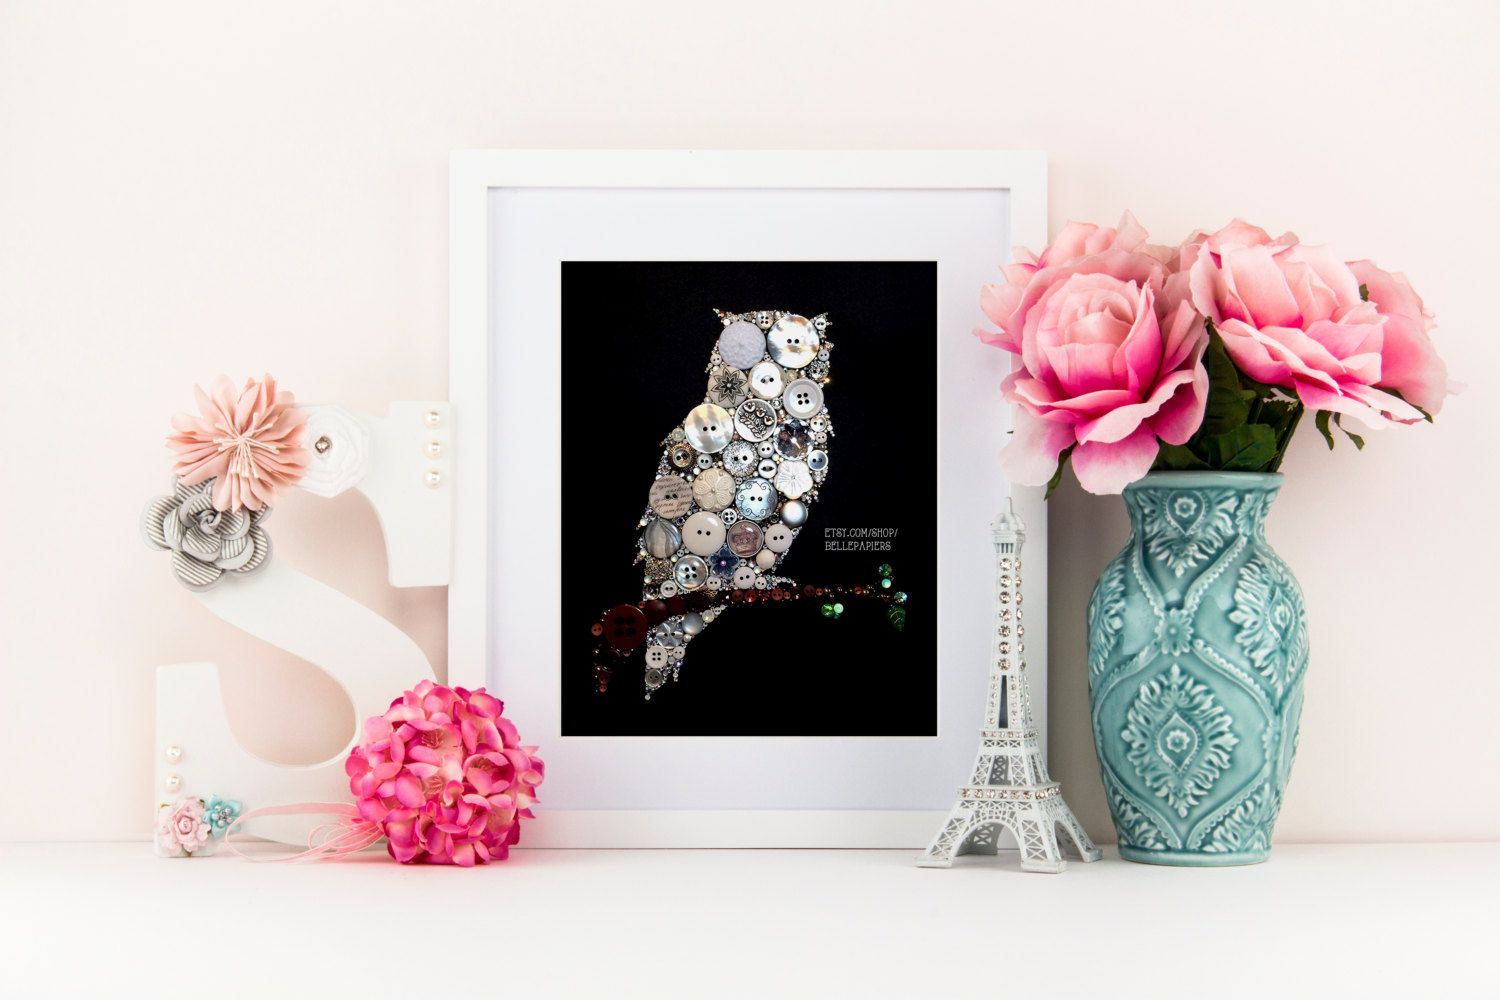 Owl Wall Art | Owl Made Of Buttons | Owl Decorations | Swarovski Owl |  Button Art Owl | Button Canvas Owl Decoration If Youre Pleased With The  Photos Of My ...